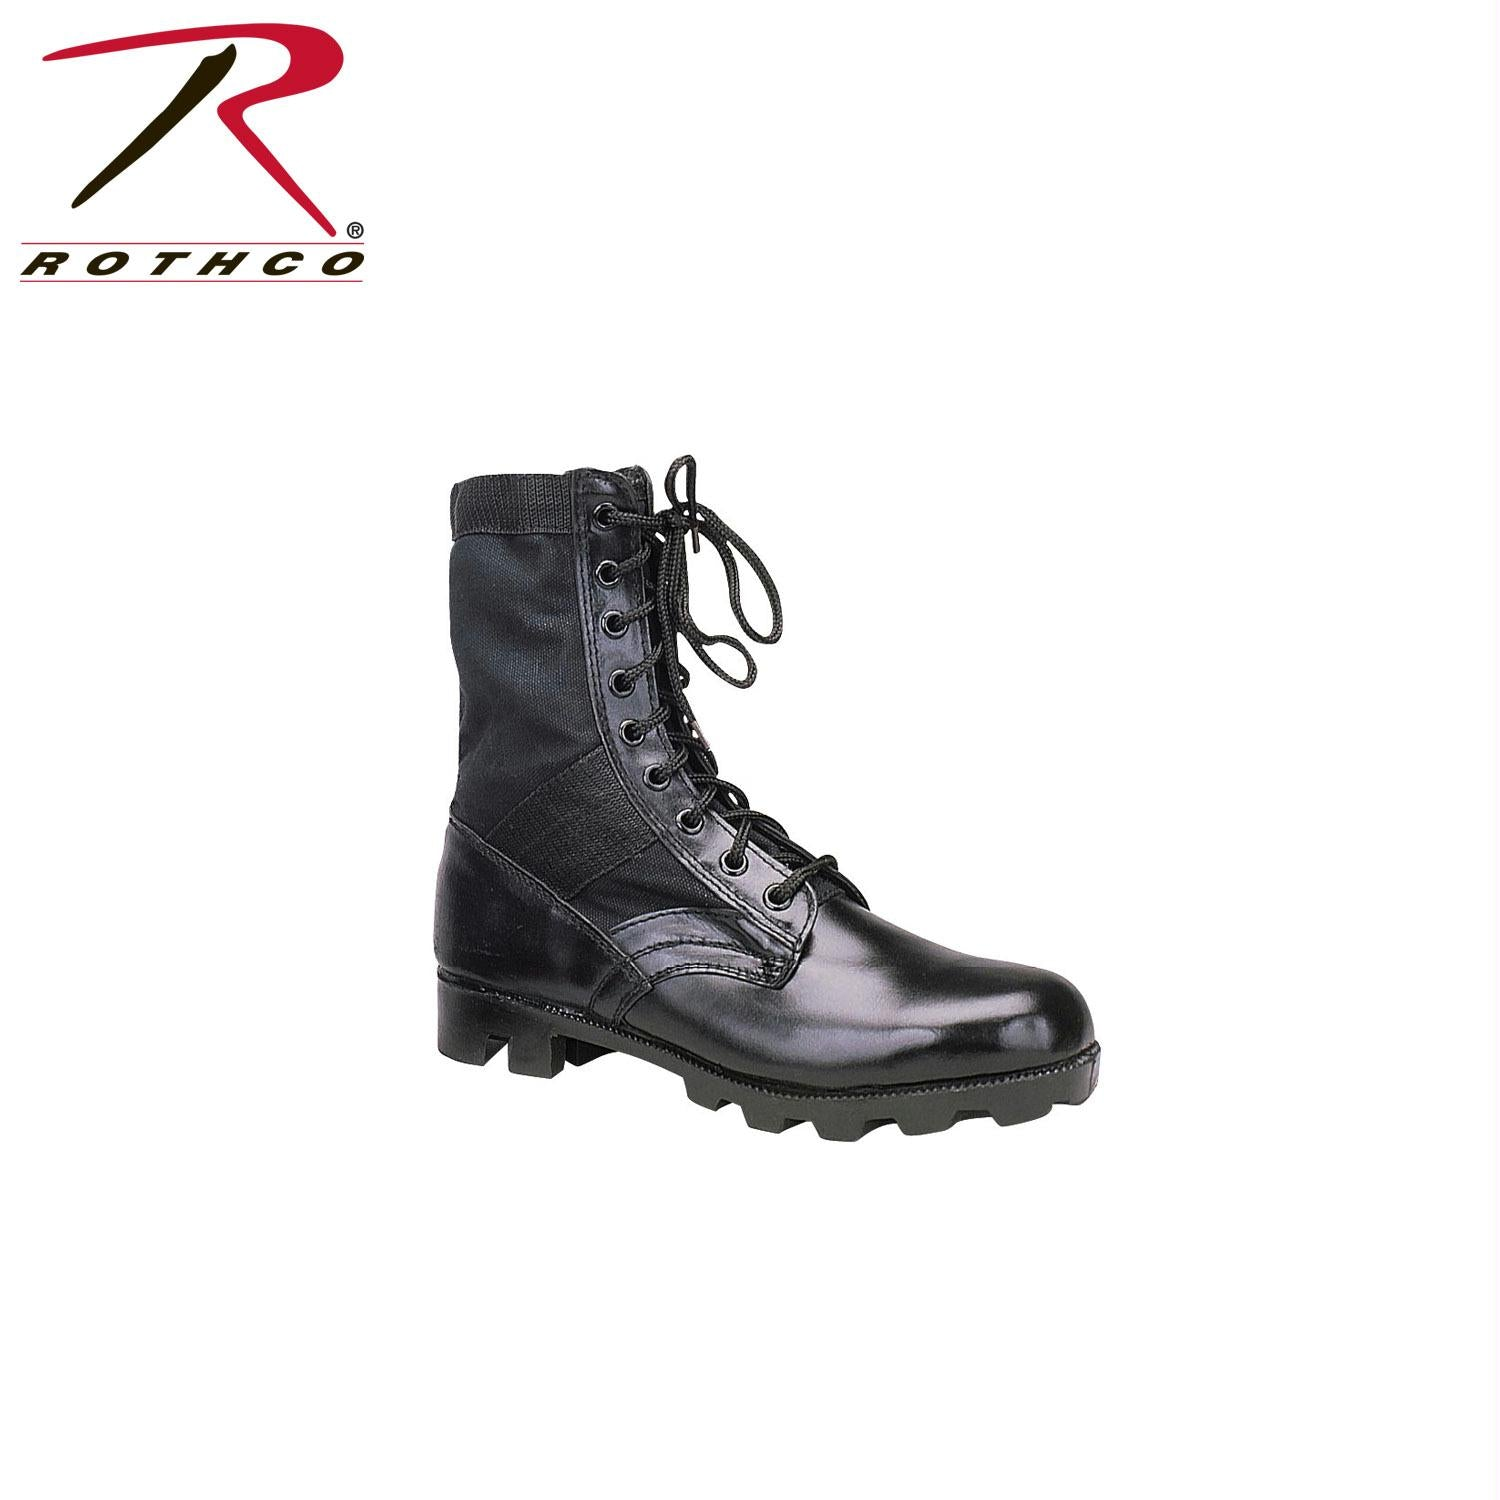 Rothco G.I. Type Black Steel Toe Jungle Boot - 7